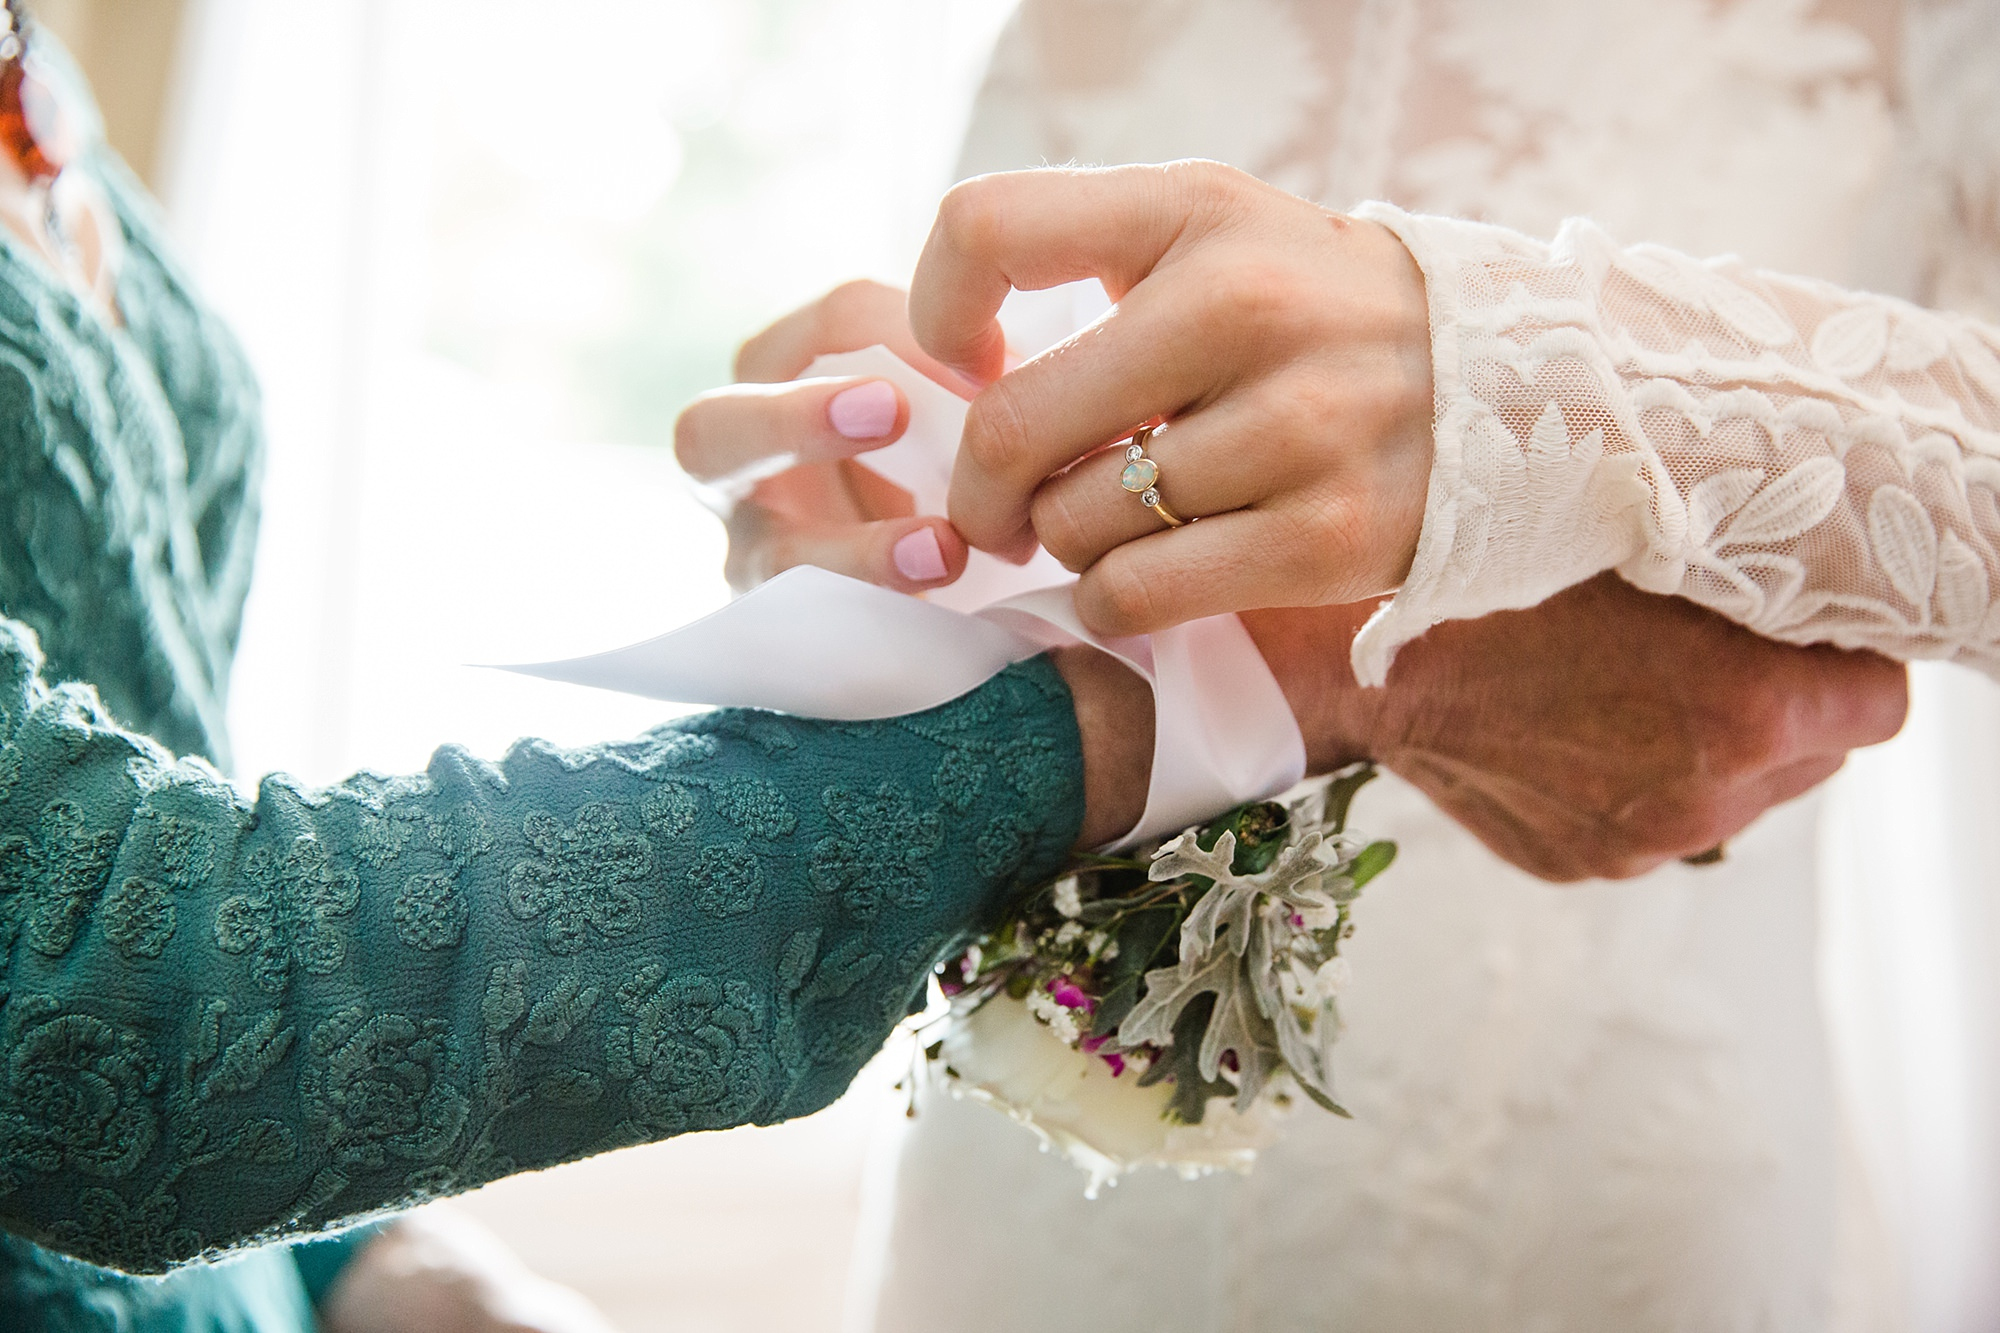 Isis Farmhouse Oxford Wedding close up detail of bride typging mother of bride's corsage